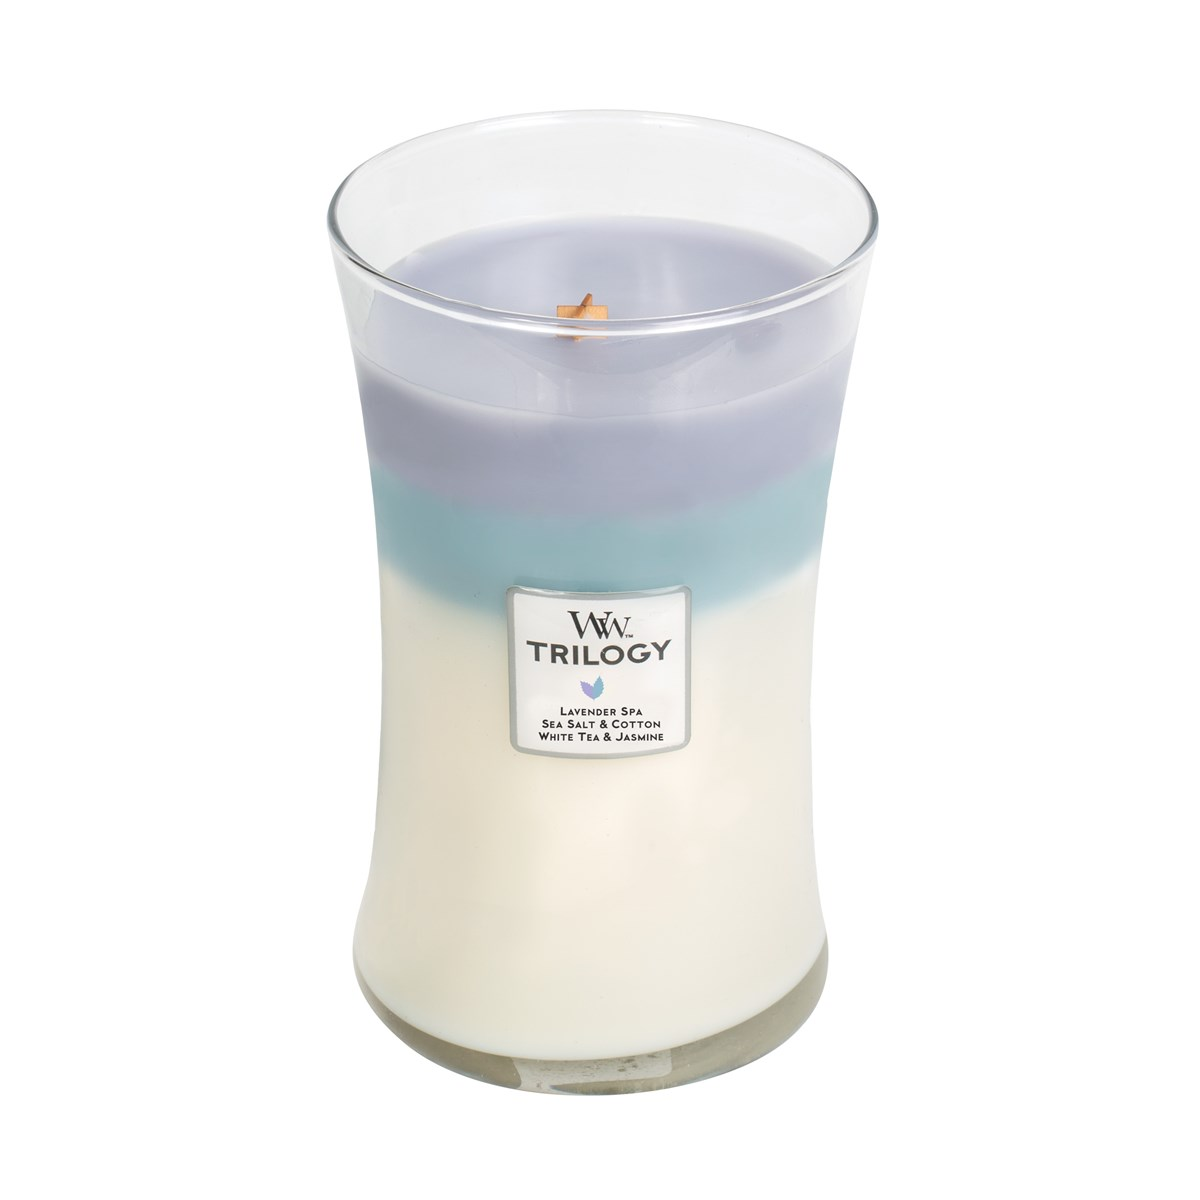 Woodwick Świeca Trilogy duża-Calming Retreat (Lavender Spa  Sea Salt & Cotton  White Tea & Jasmine)